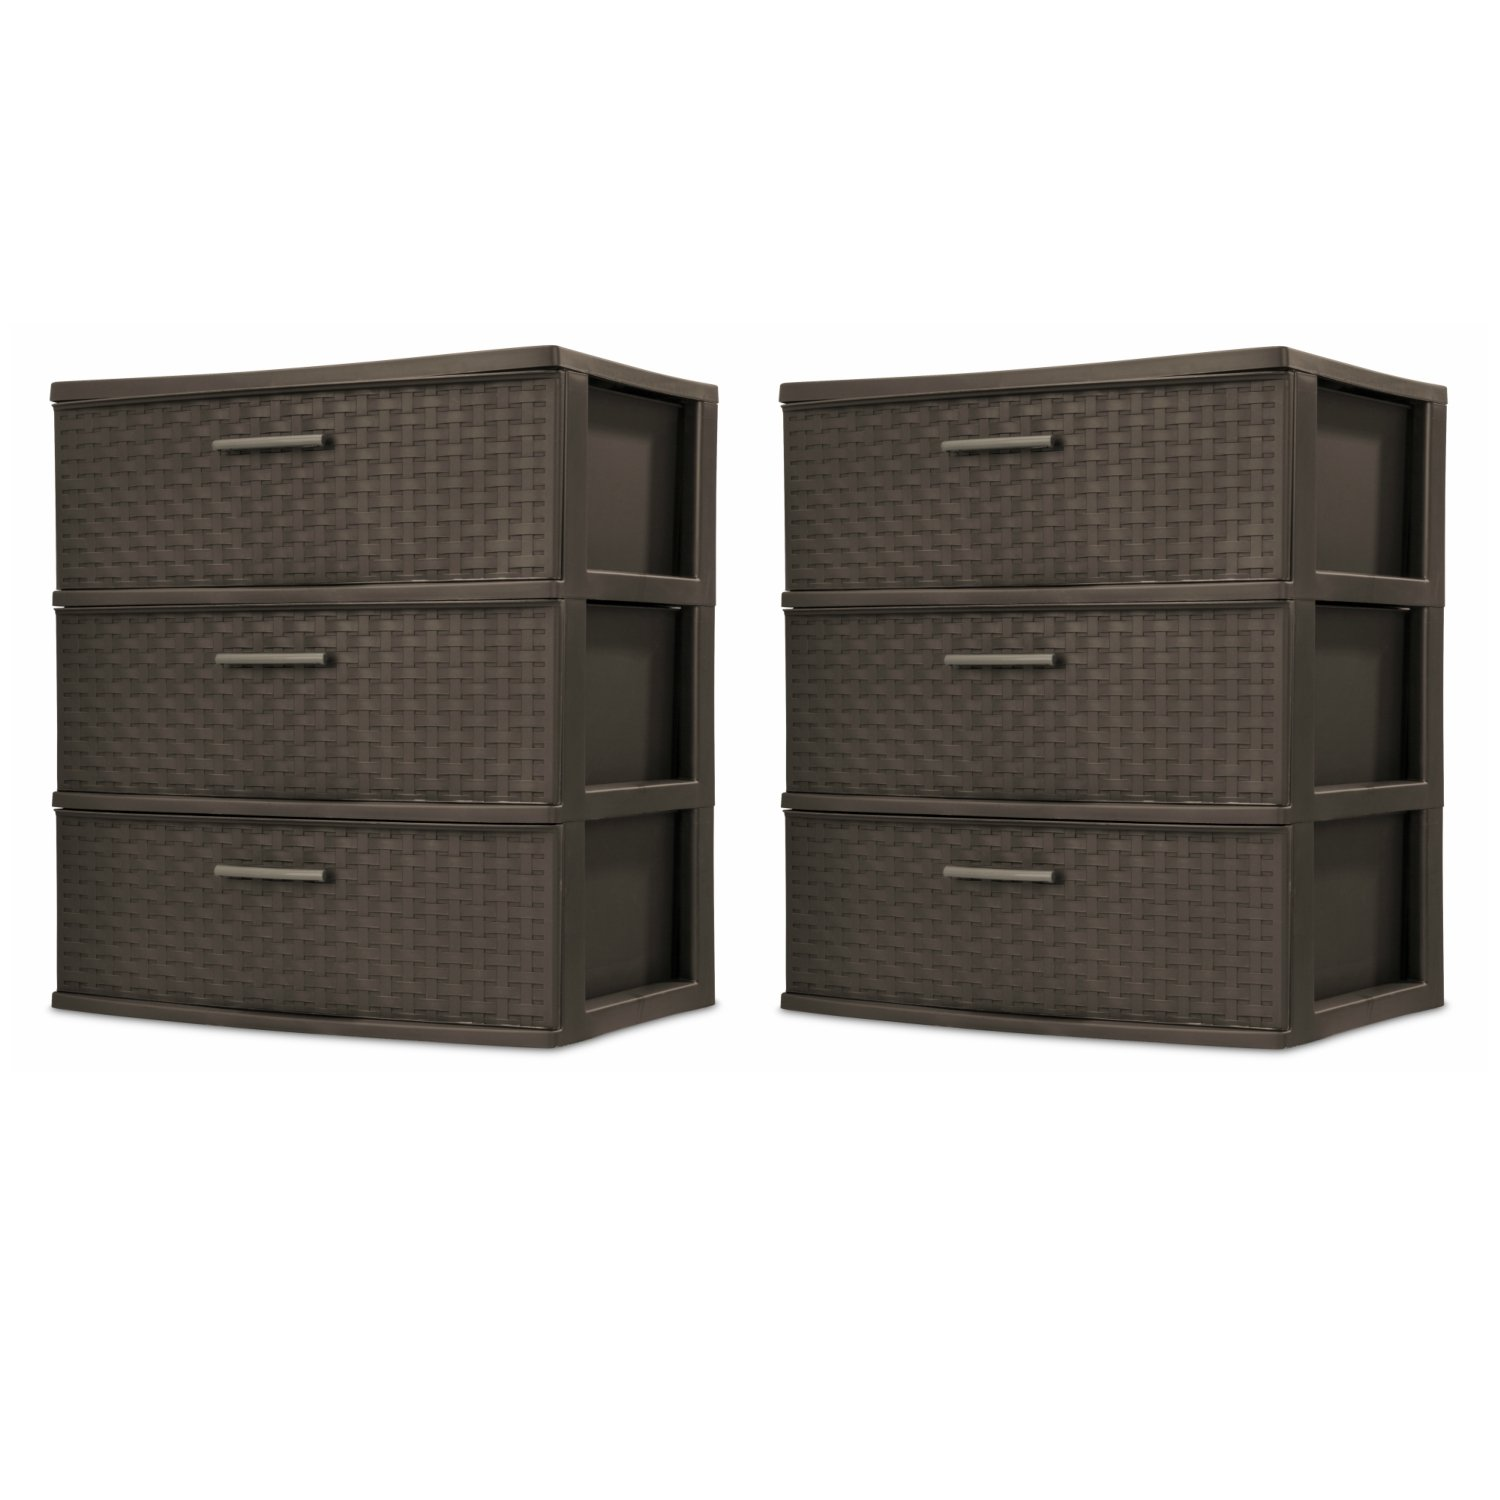 Sterilite 25306P01 3 Drawer Wide Weave Tower, Espresso Frame & Drawers w/ Driftwood Handles, 2-Pack